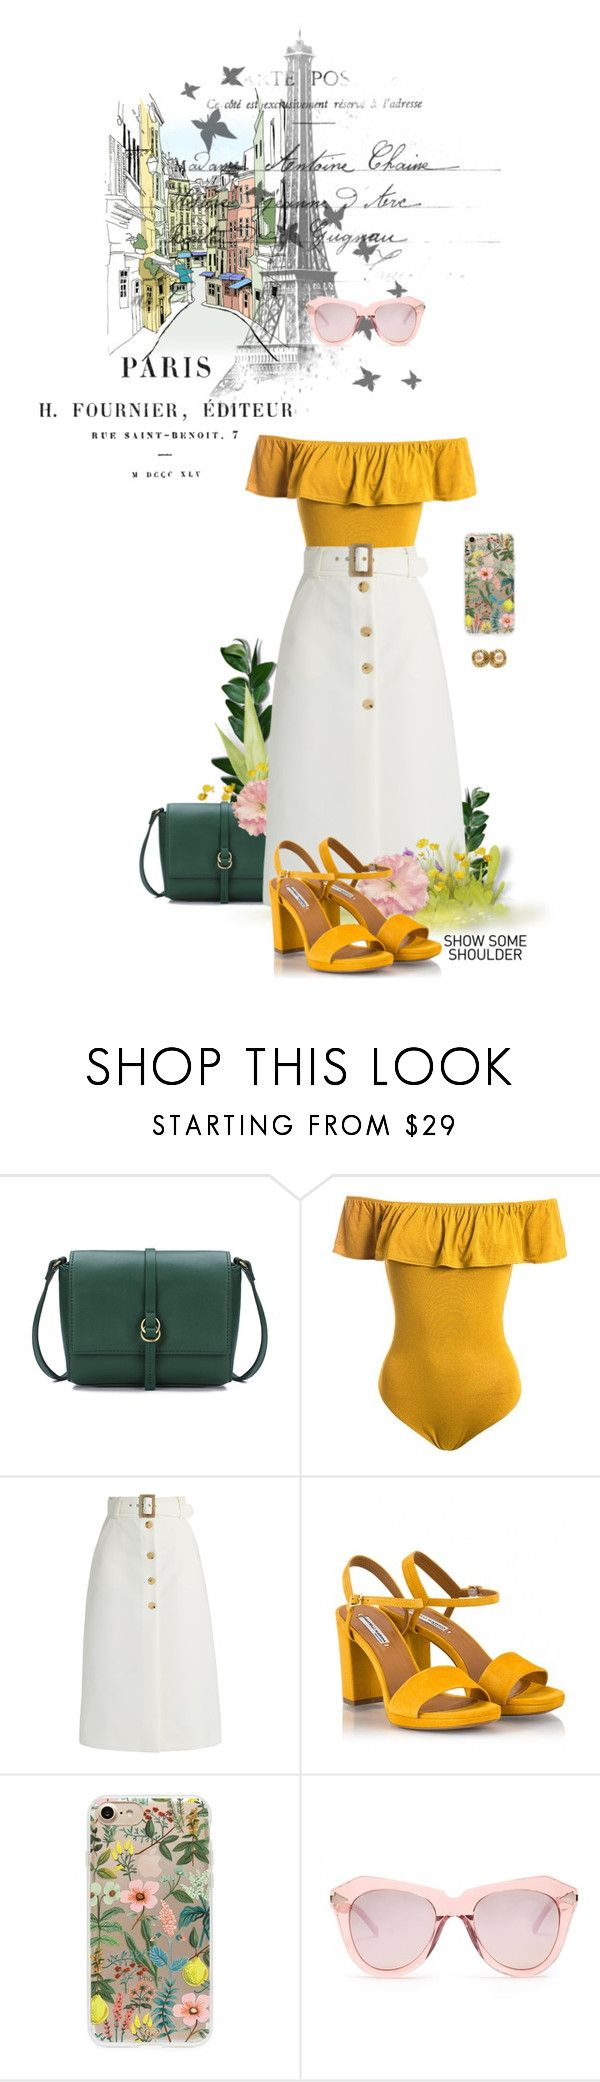 """""""With Luv From Paris"""" by tophercouture ❤ liked on Polyvore featuring Sans Souci, Bella Freud, Fratelli Karida, Rifle Paper Co, Karen Walker, Chanel, travel, mustard, TopHerCouture and shouldershrug"""